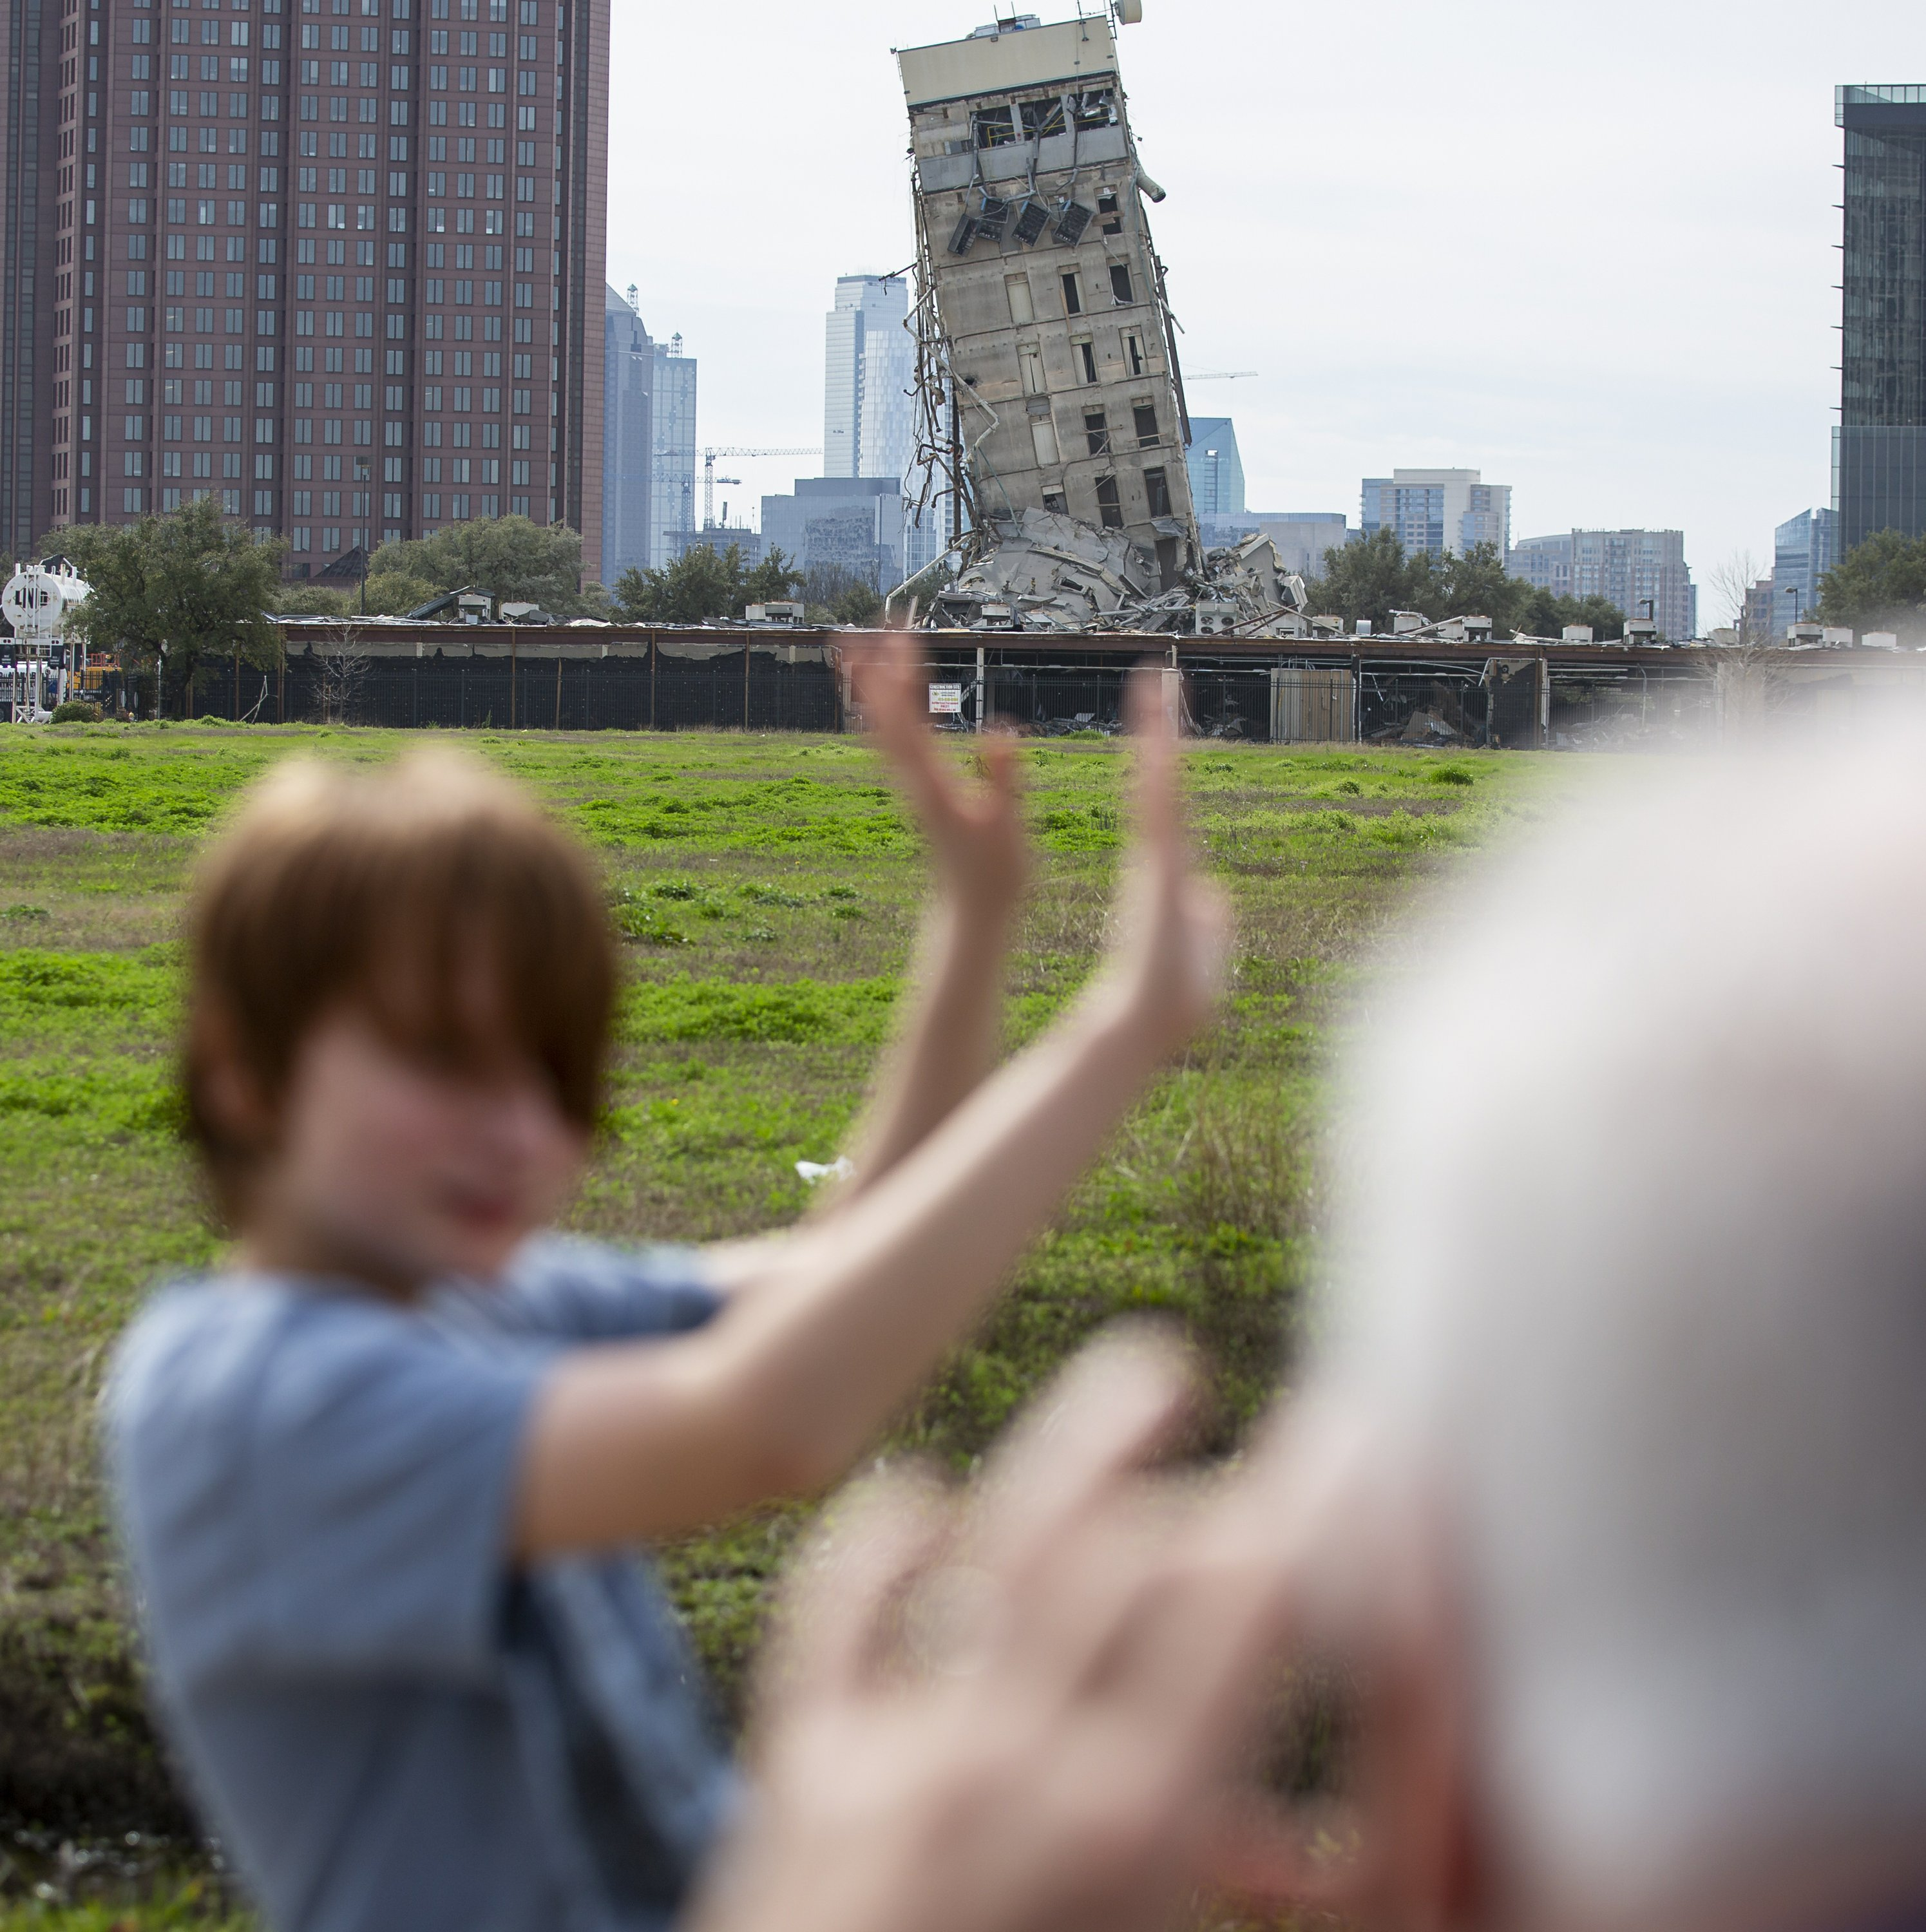 'Leaning Tower of Dallas' is online star after implosion